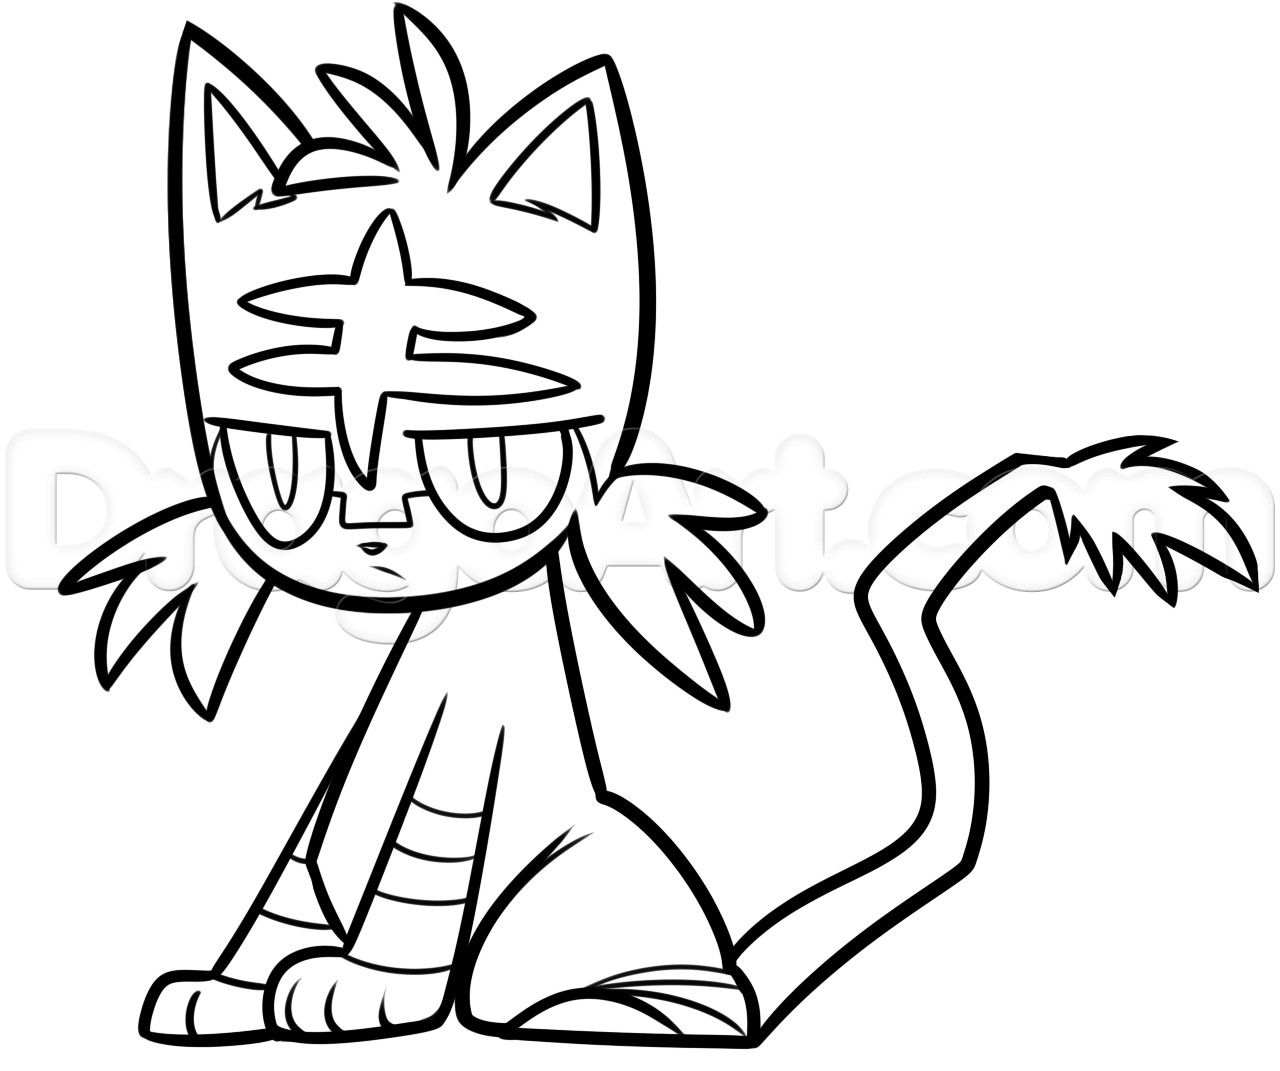 Pokemon Coloring Litten From The Thousands Of Photographs Online About Pokemon Coloring Litten Cartoon Coloring Pages Pikachu Coloring Page Pokemon Coloring